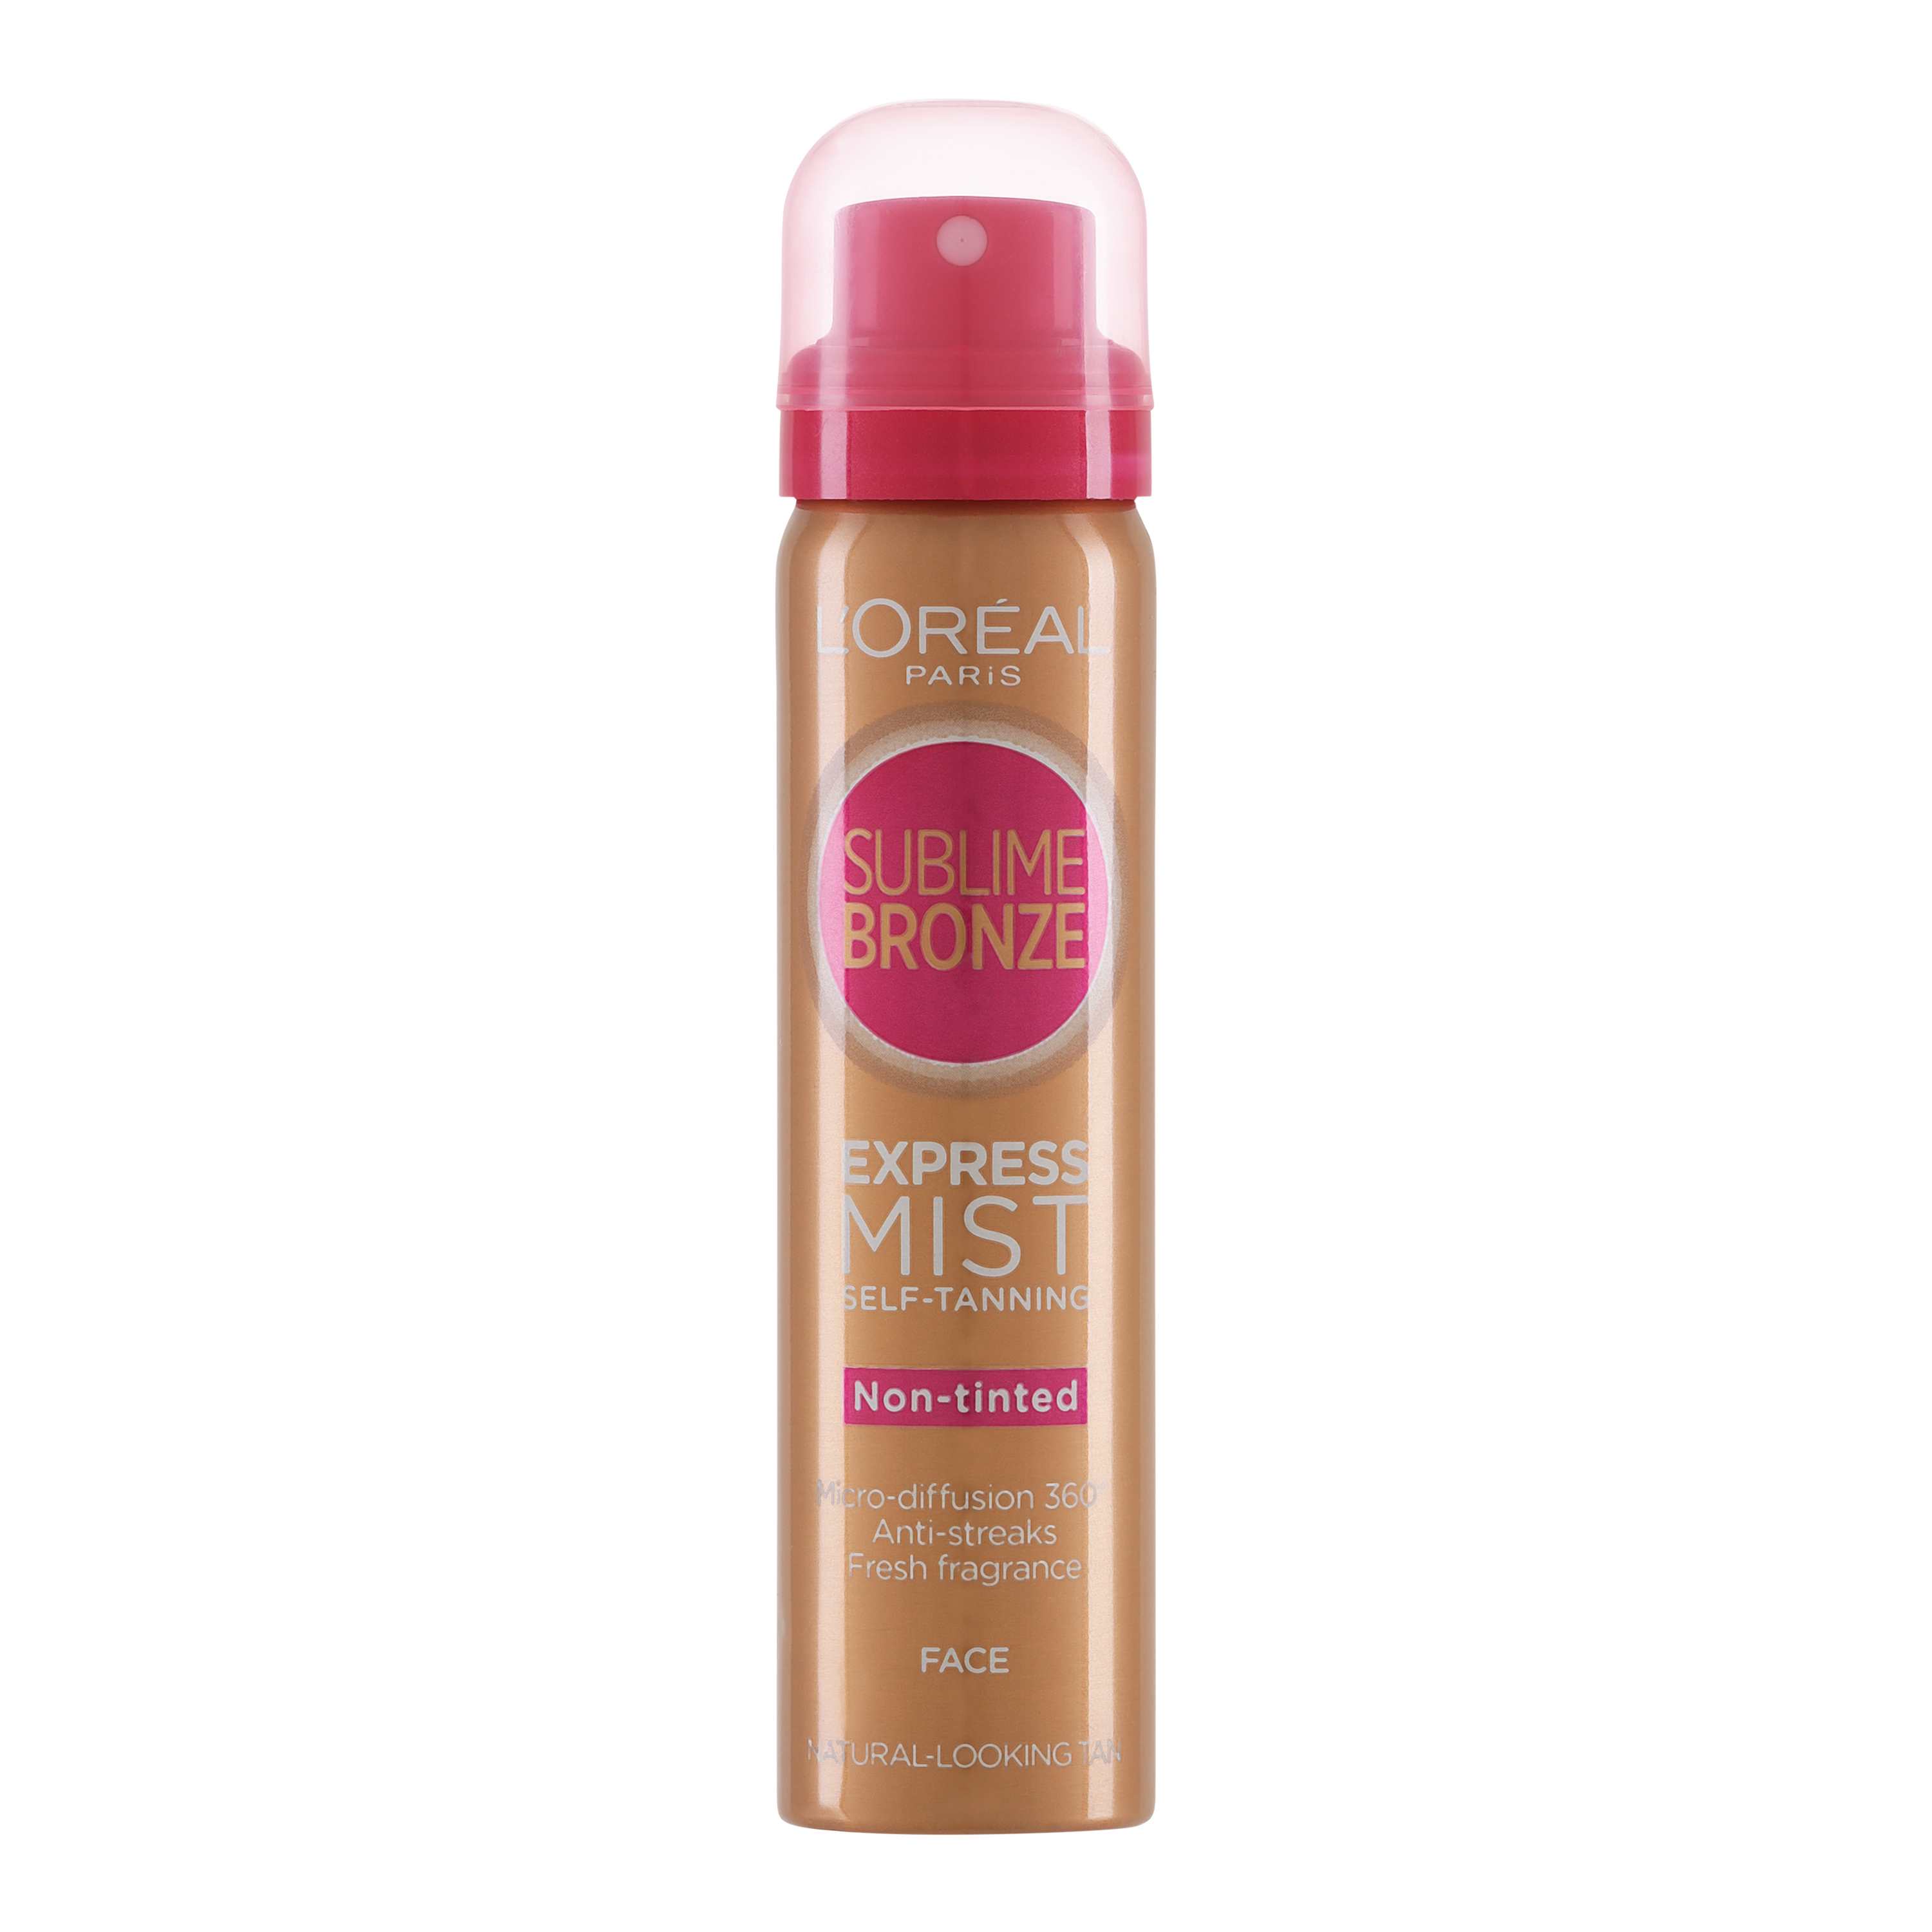 Sublime Bronze Express ProFace Dry Mist for Face